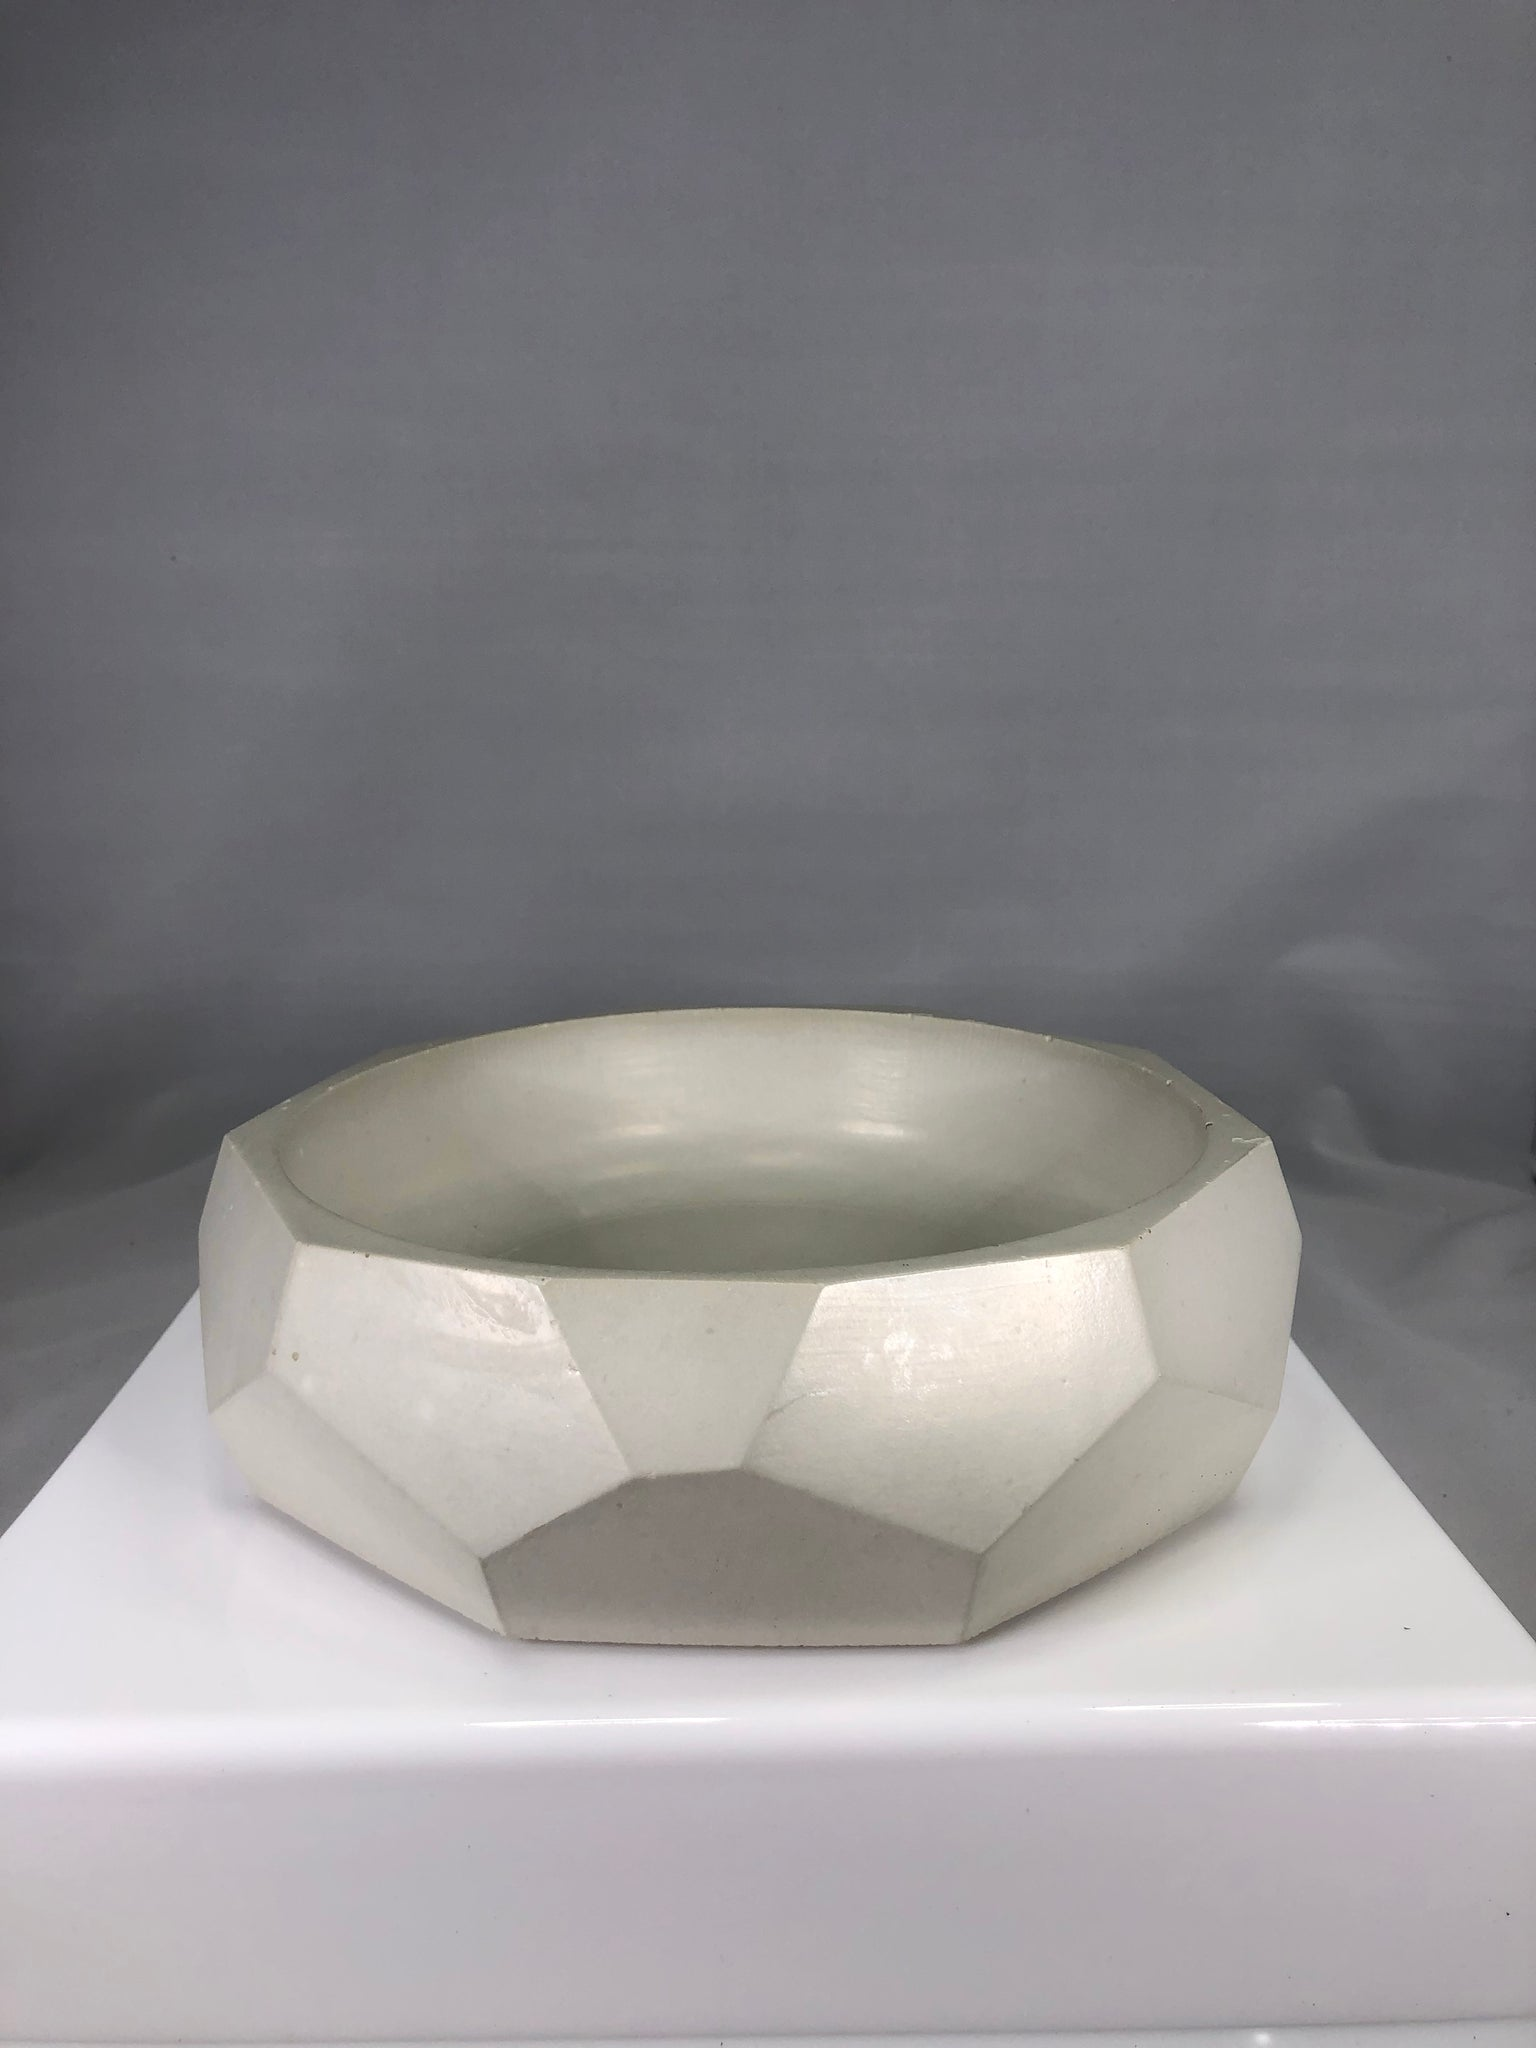 Concrete Geometric Dish - 318 Art and Garden